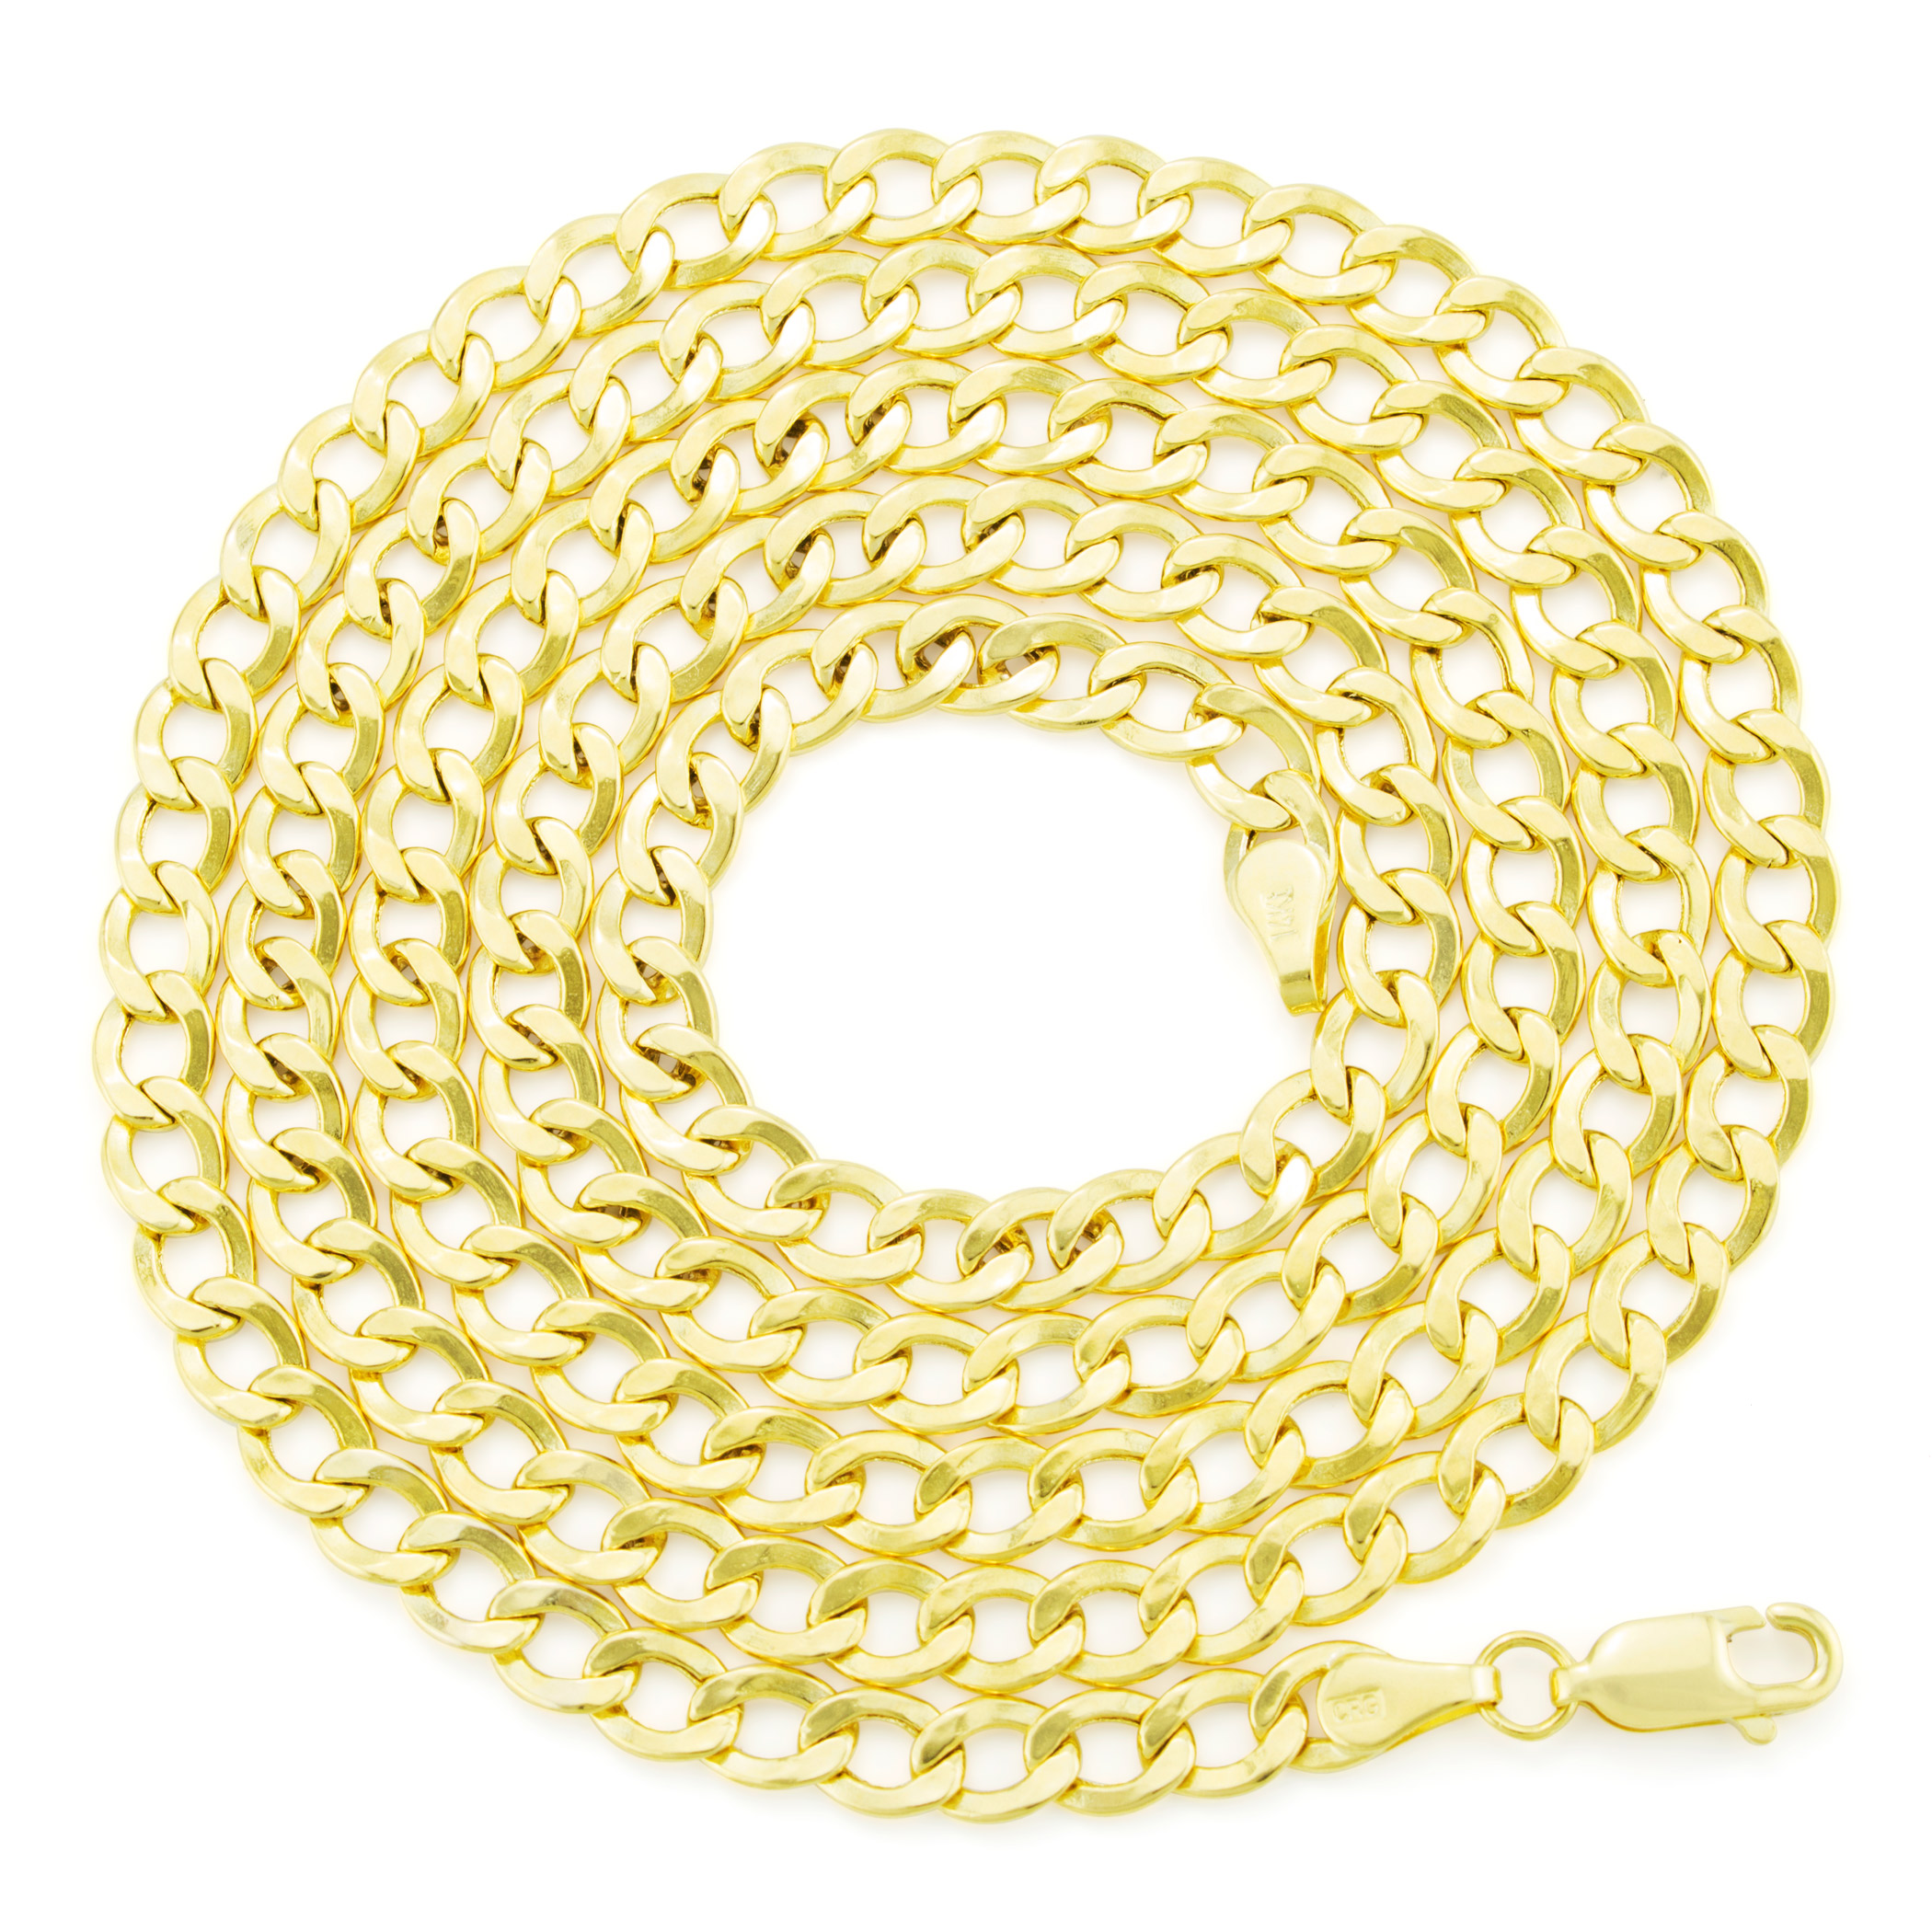 Real-14K-Yellow-Gold-4-5mm-Cuban-Curb-Chain-Link-Bracelet-Anklet-Chain-7-034-8-034-9-034 thumbnail 20